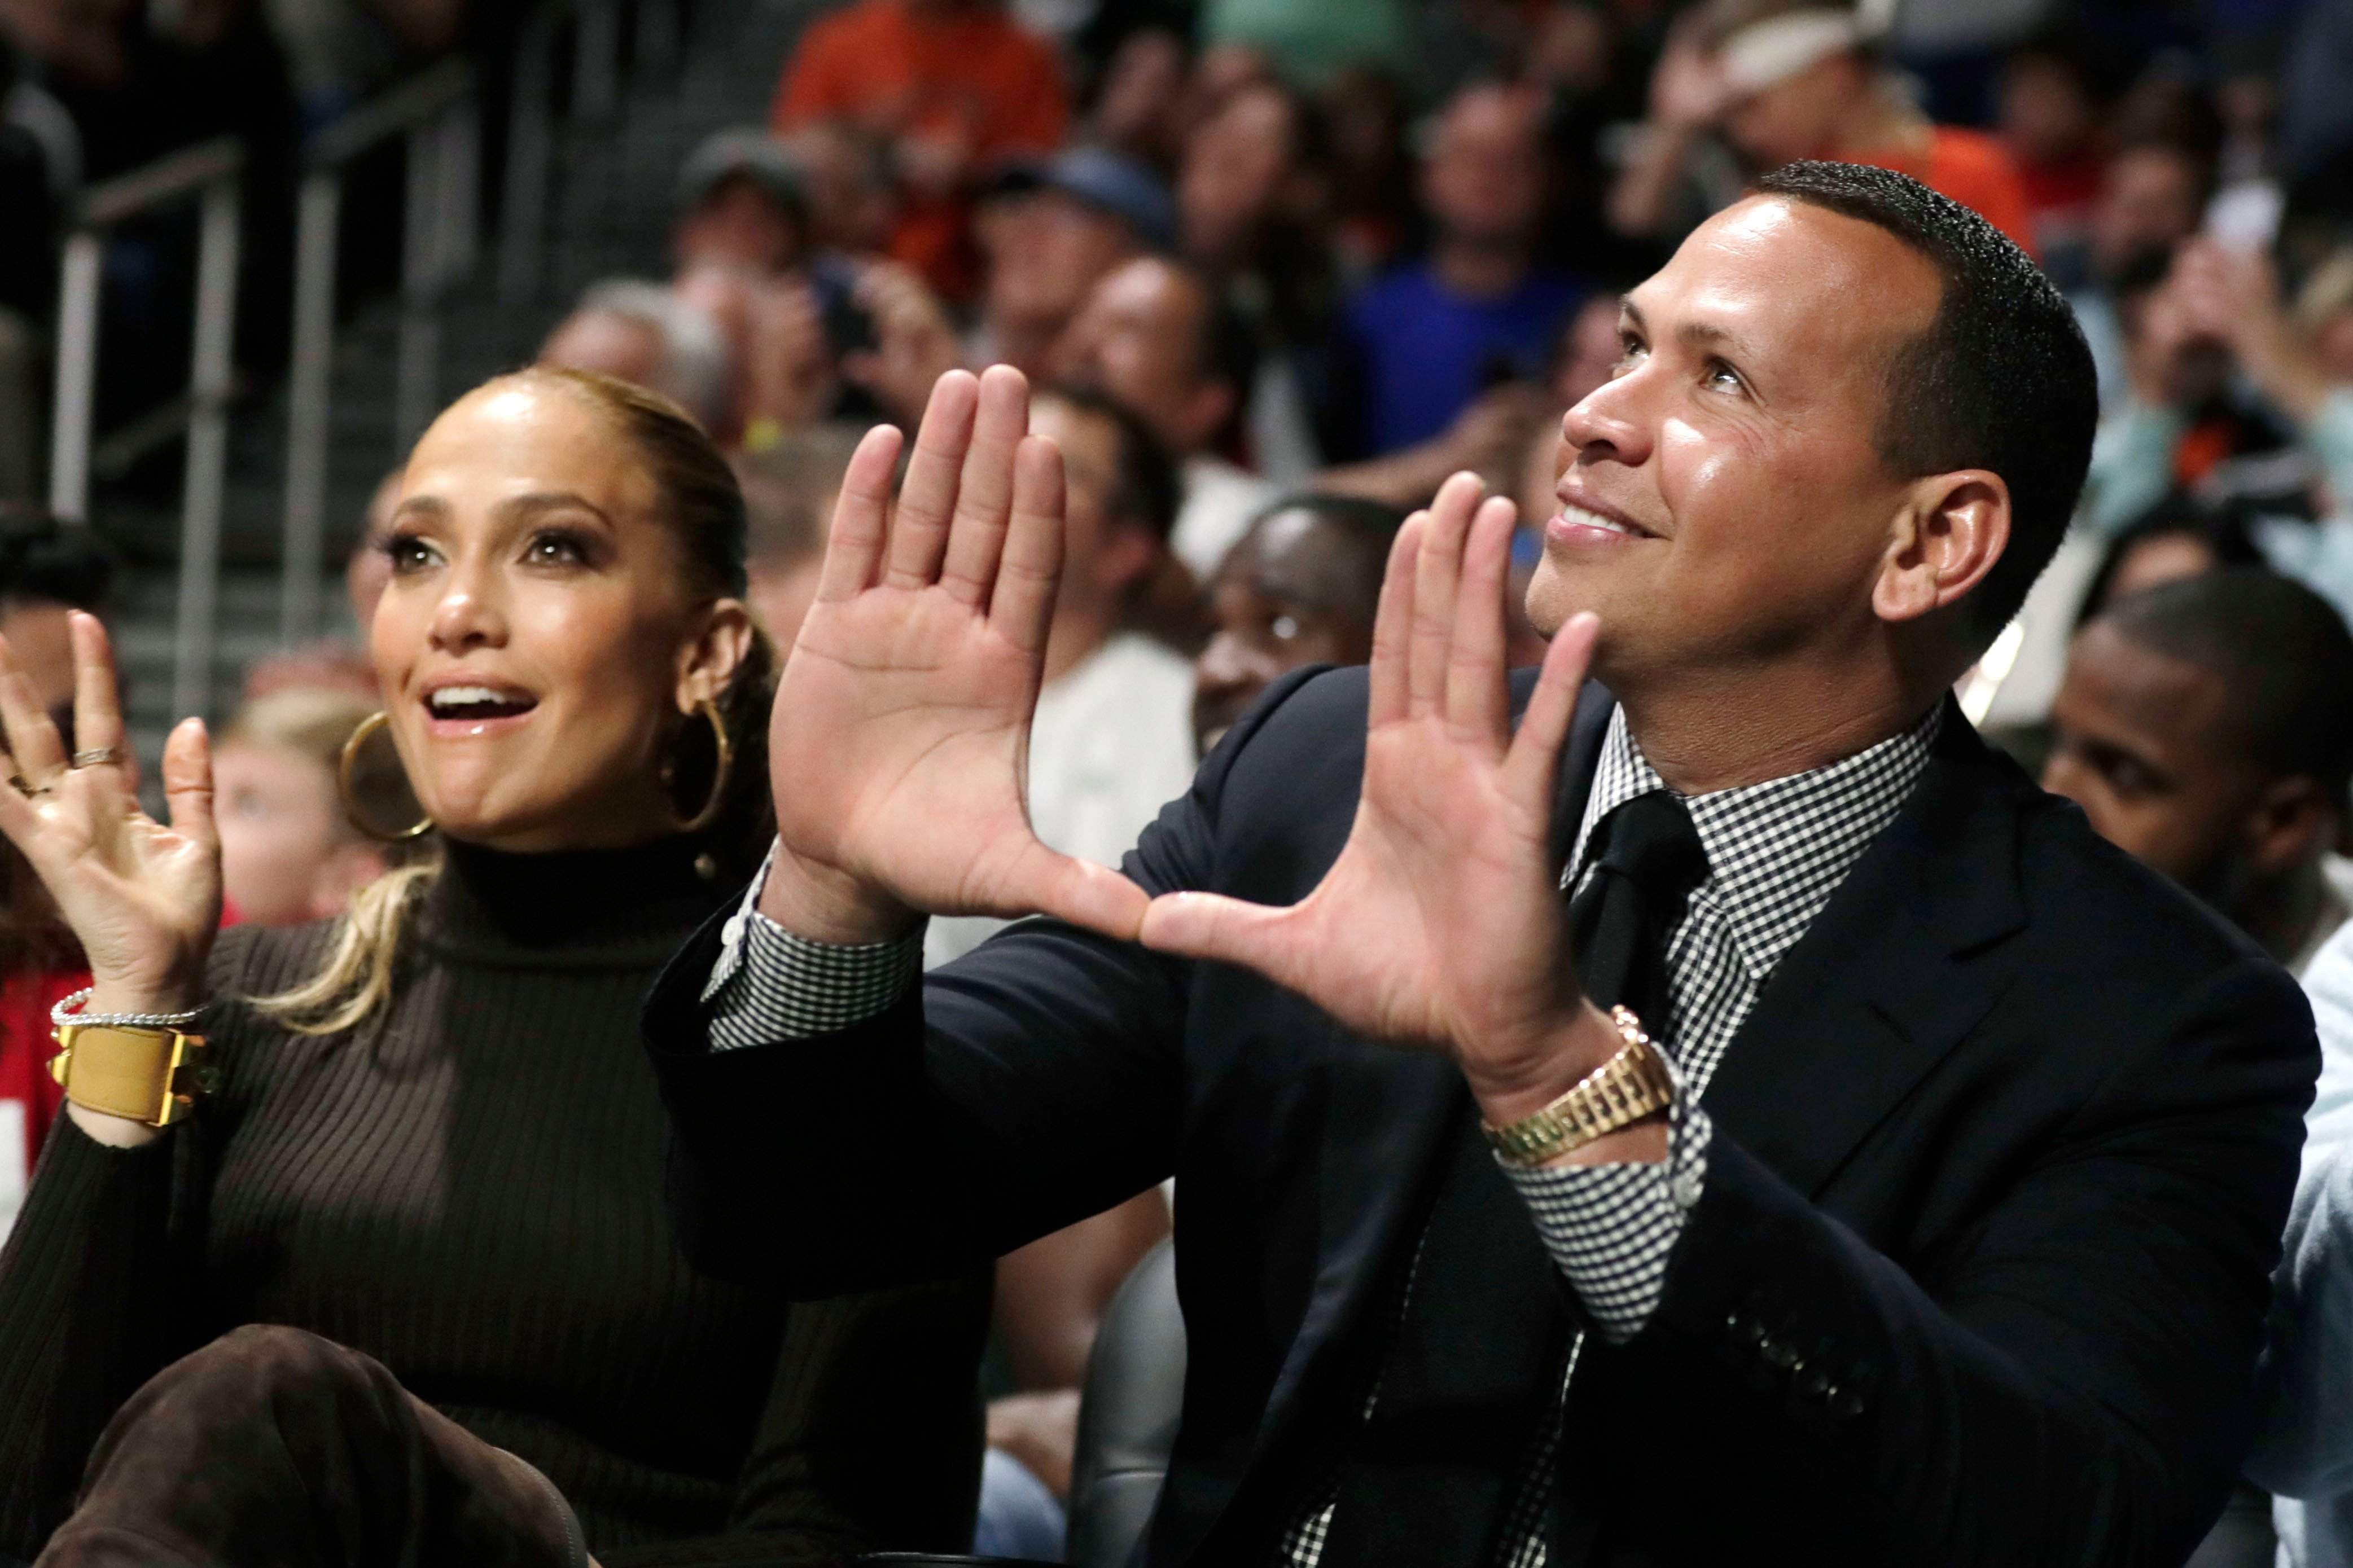 A-Rod joining ESPN and taking over the TV world